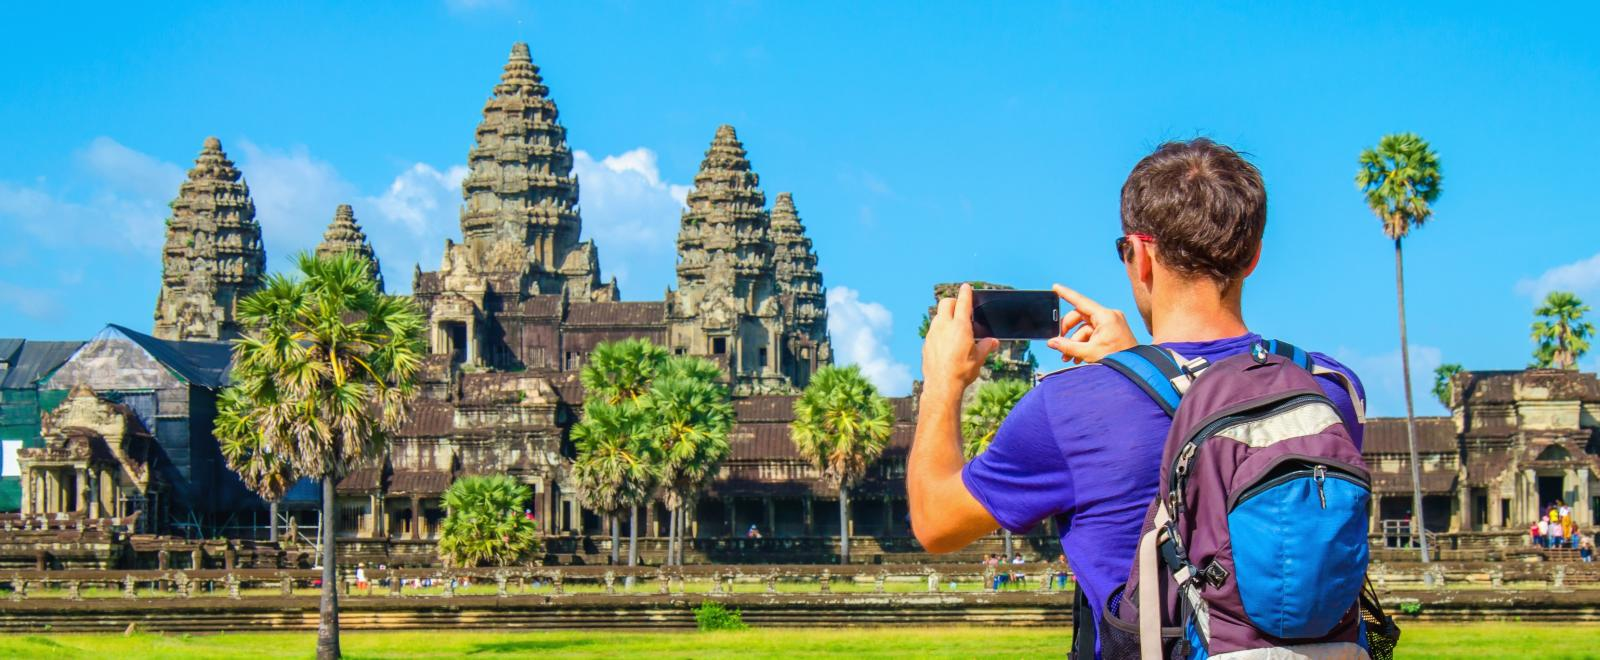 Traveller takes a photo of Angkor Wat during his Discovery Tour in Cambodia.